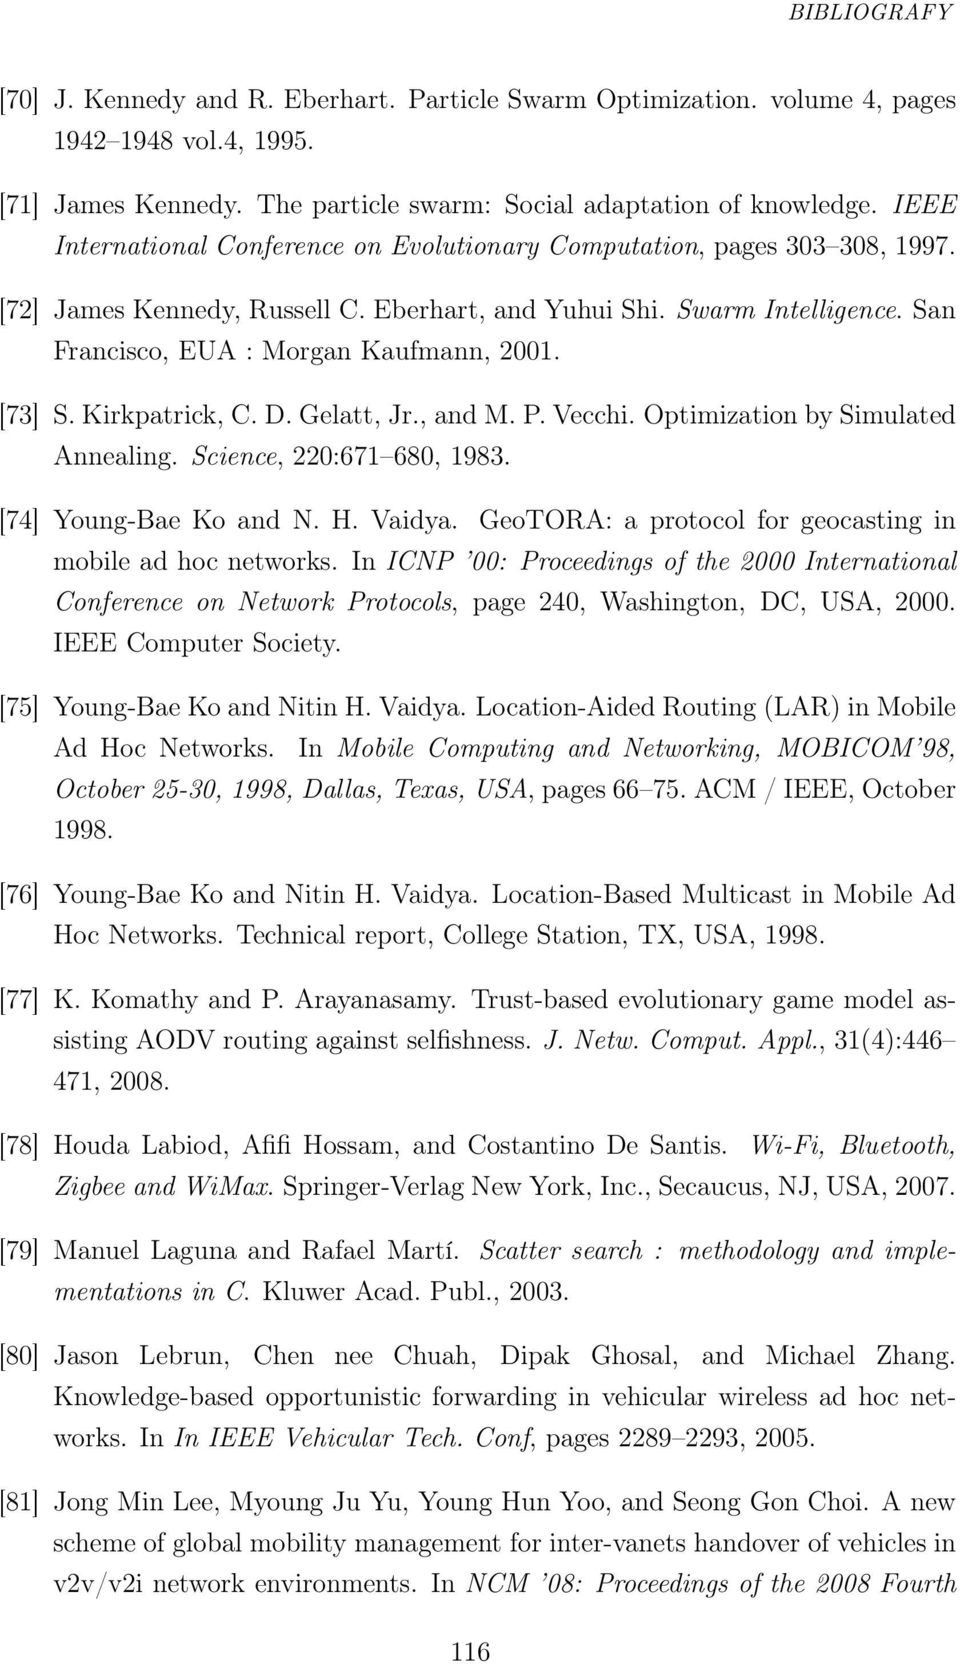 [73] S. Kirkpatrick, C. D. Gelatt, Jr., and M. P. Vecchi. Optimization by Simulated Annealing. Science, 220:671 680, 1983. [74] Young-Bae Ko and N. H. Vaidya.